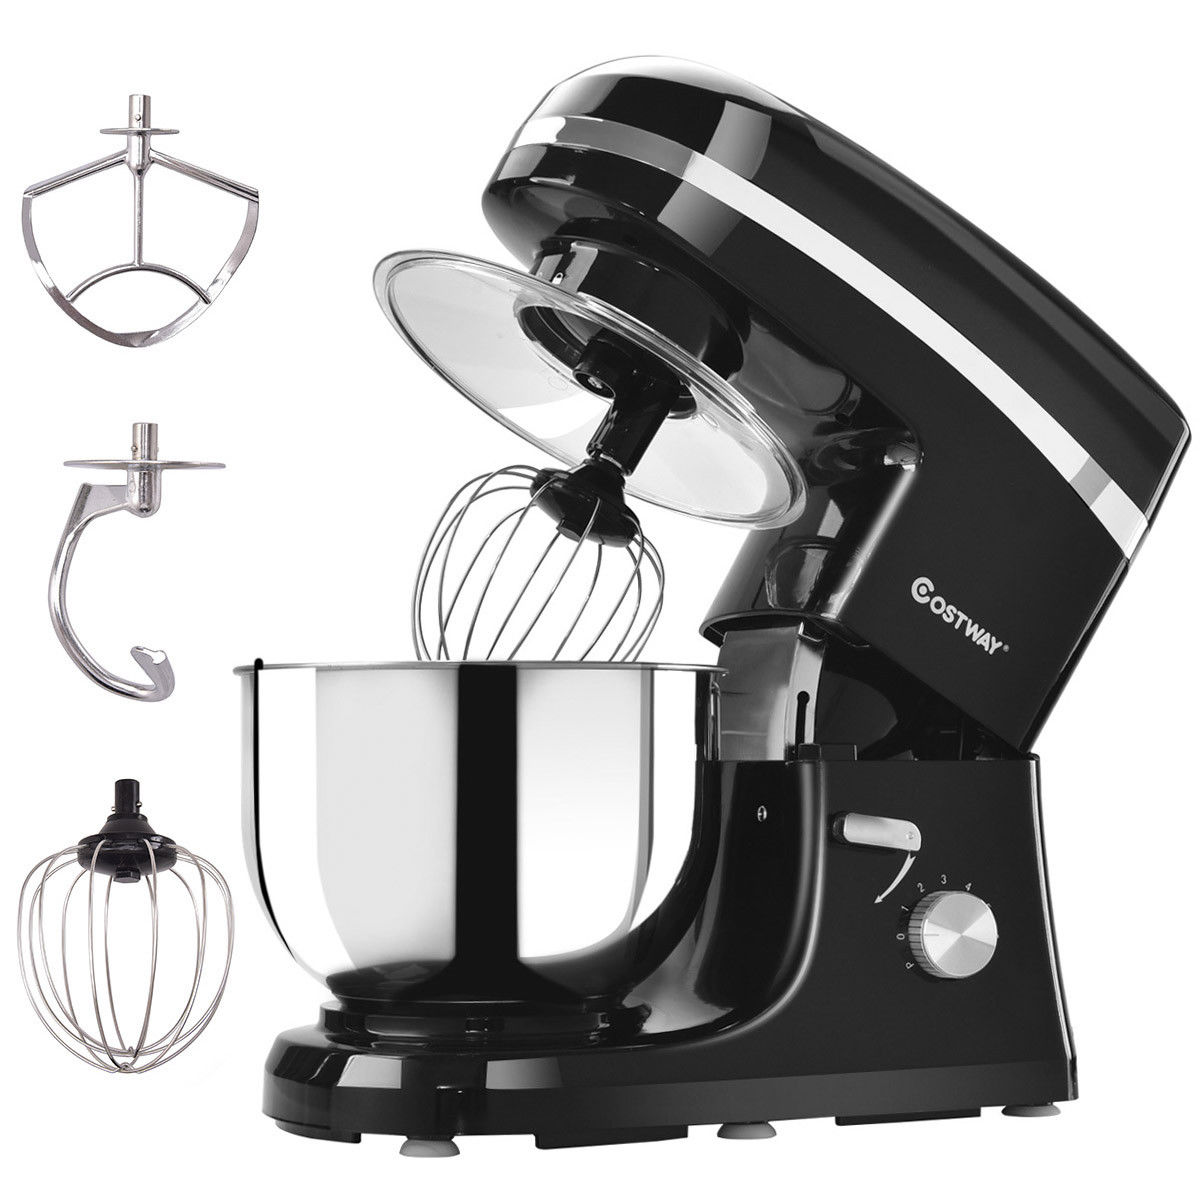 Costway Electric Food Stand Mixer 6 Speed 5.3Qt 800W Tilt-Head Stainless Steel Bowl